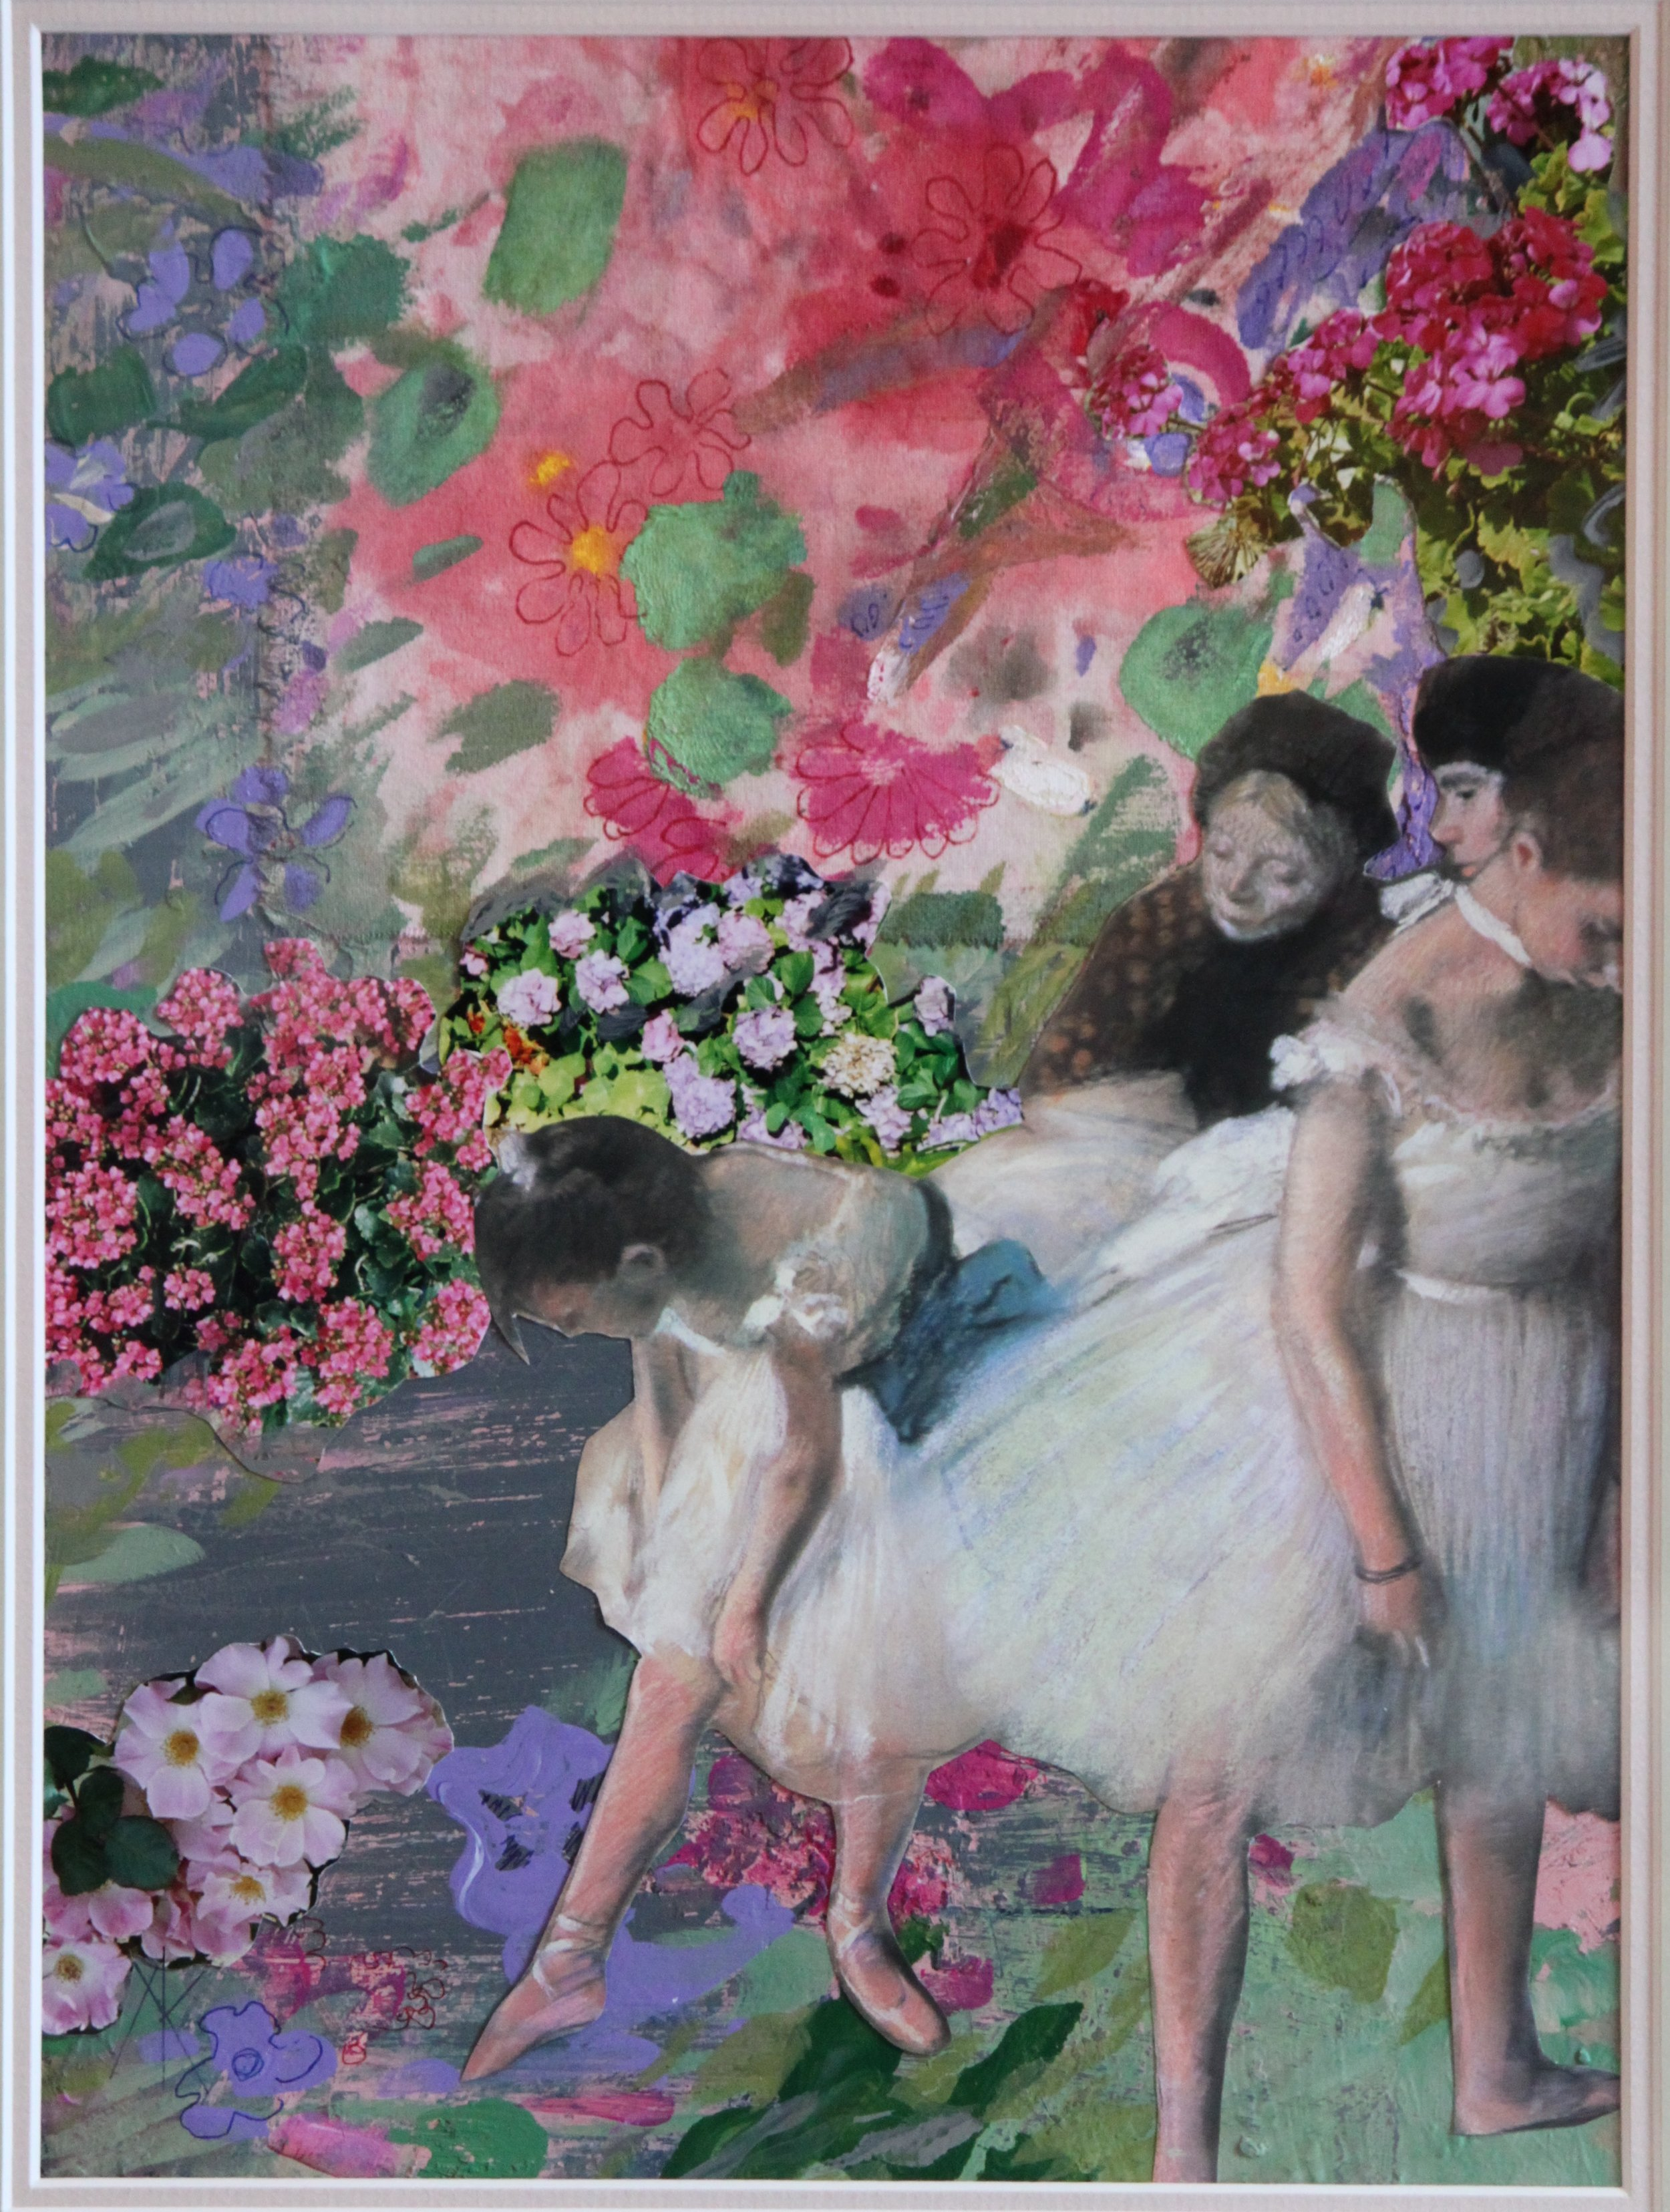 TITLE:  Degas's garden 3  MEDIUM: Acrylic paint and collage on paper DIMENSIONS: H59 x W49cm  FRAMED